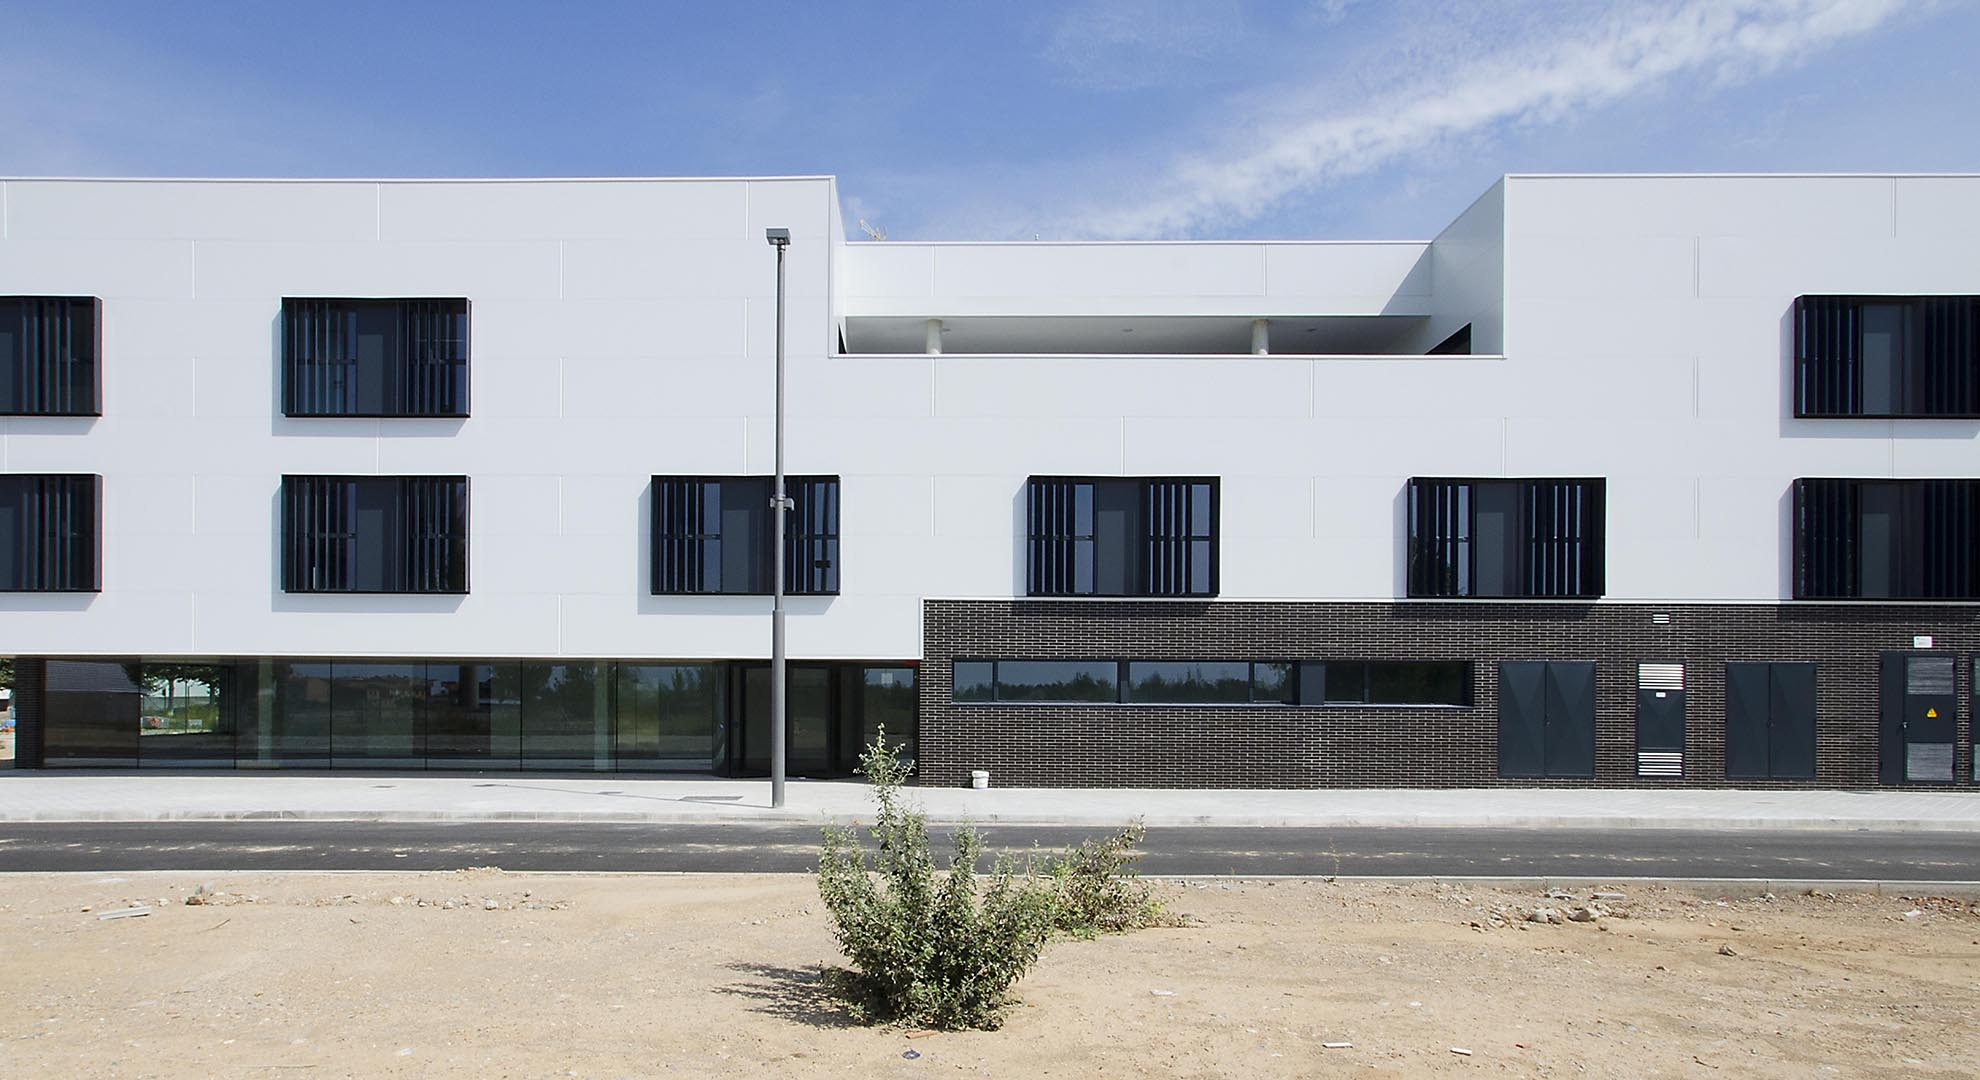 Healthcare center for the elderly population in Balaguer, Spain